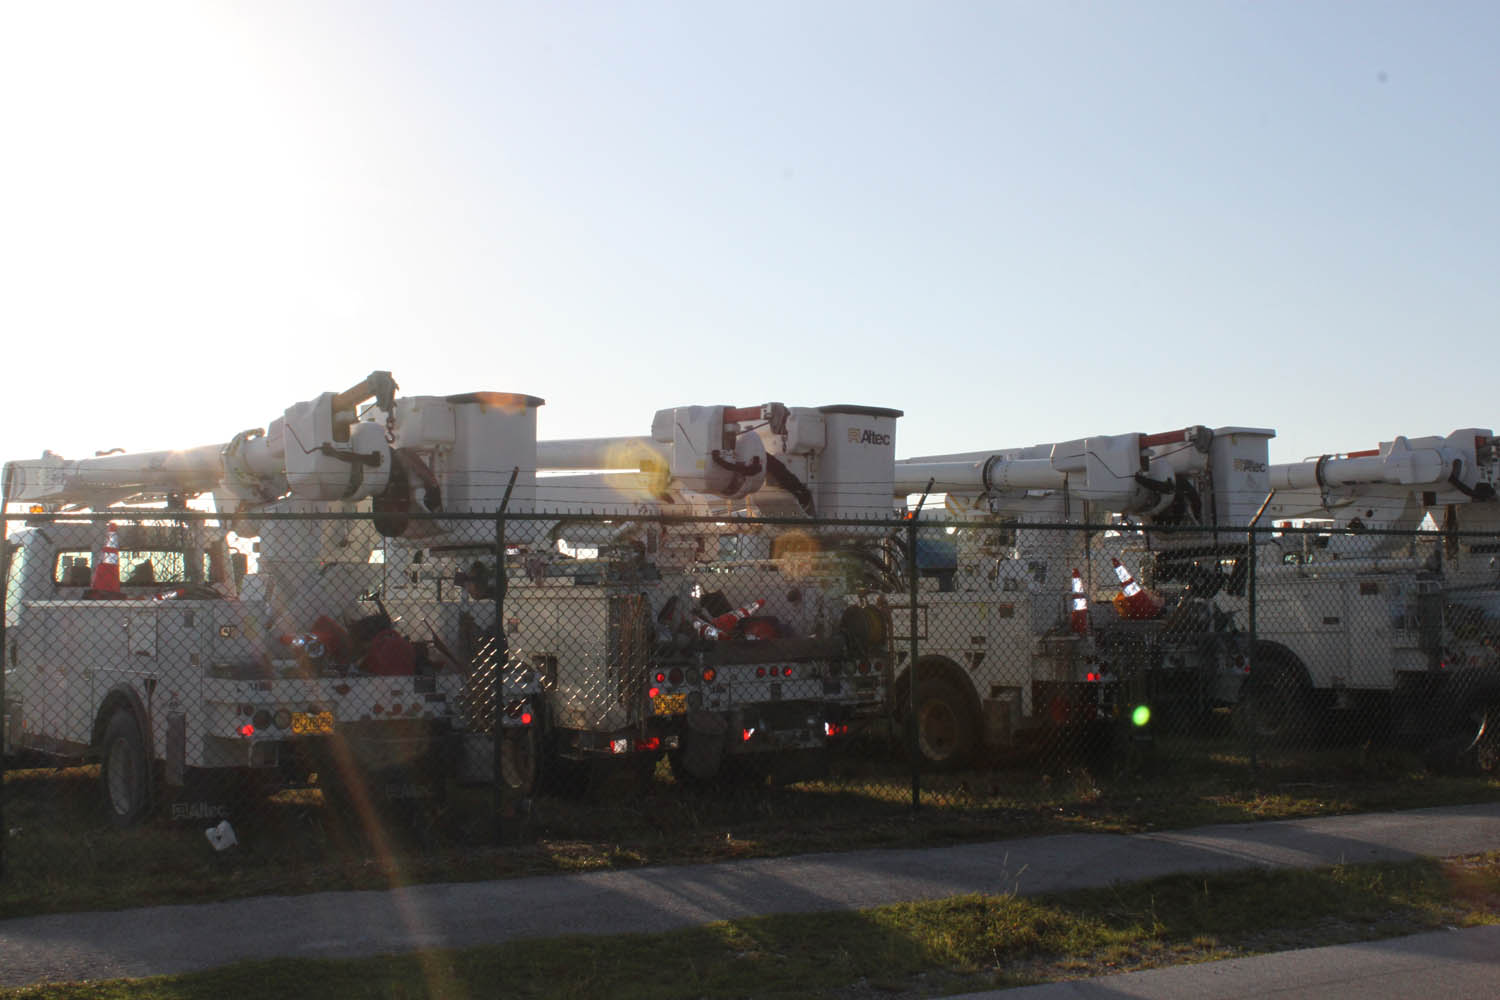 Crews of linemen are parking their rigs at the west end of Marathon airport.